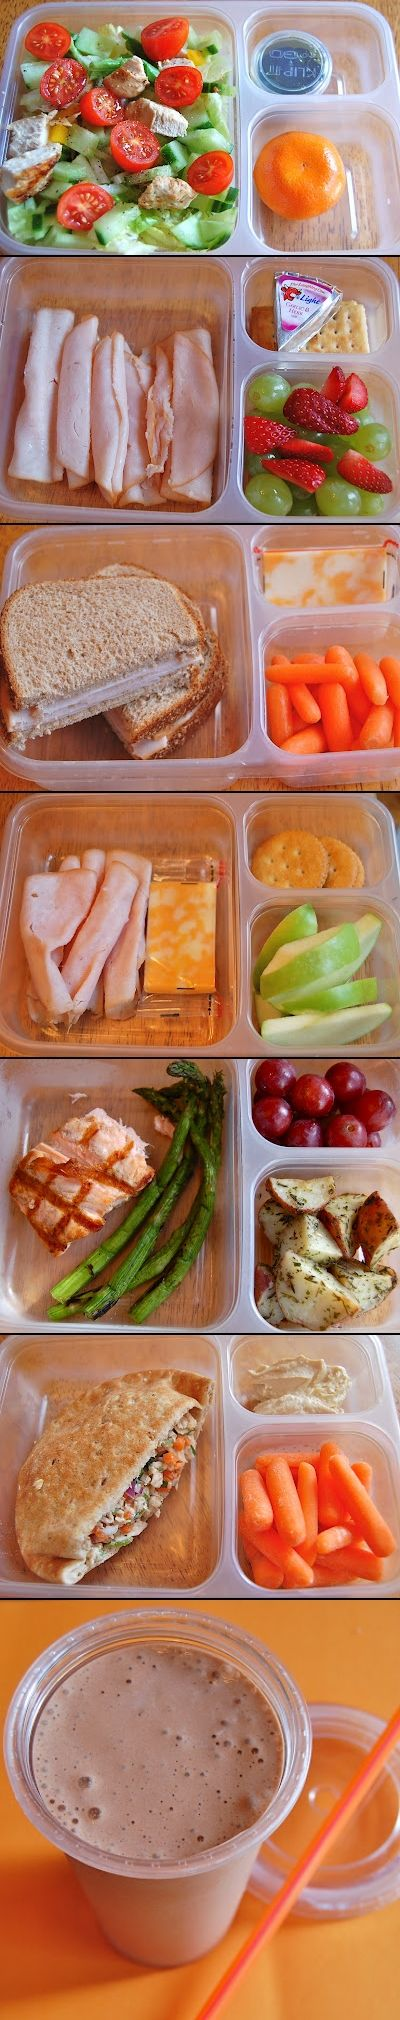 Healthy Lunch Ideas -- you can buy the bento-type containers (Ziploc) at Walmart, Target, etc.